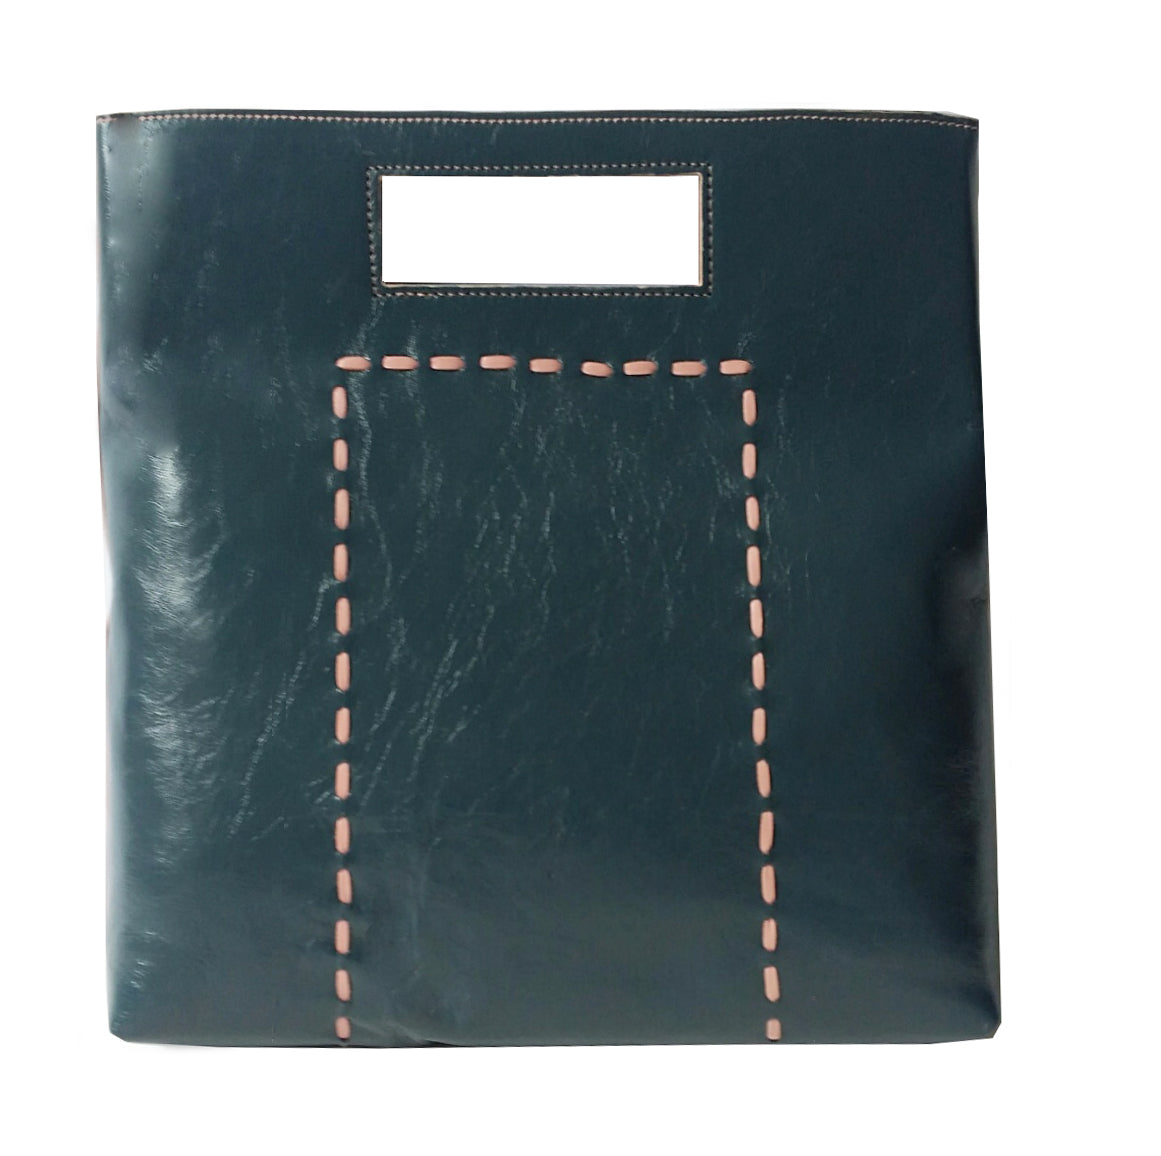 Stitch bag - Maria Cardelli Fashion Accessories